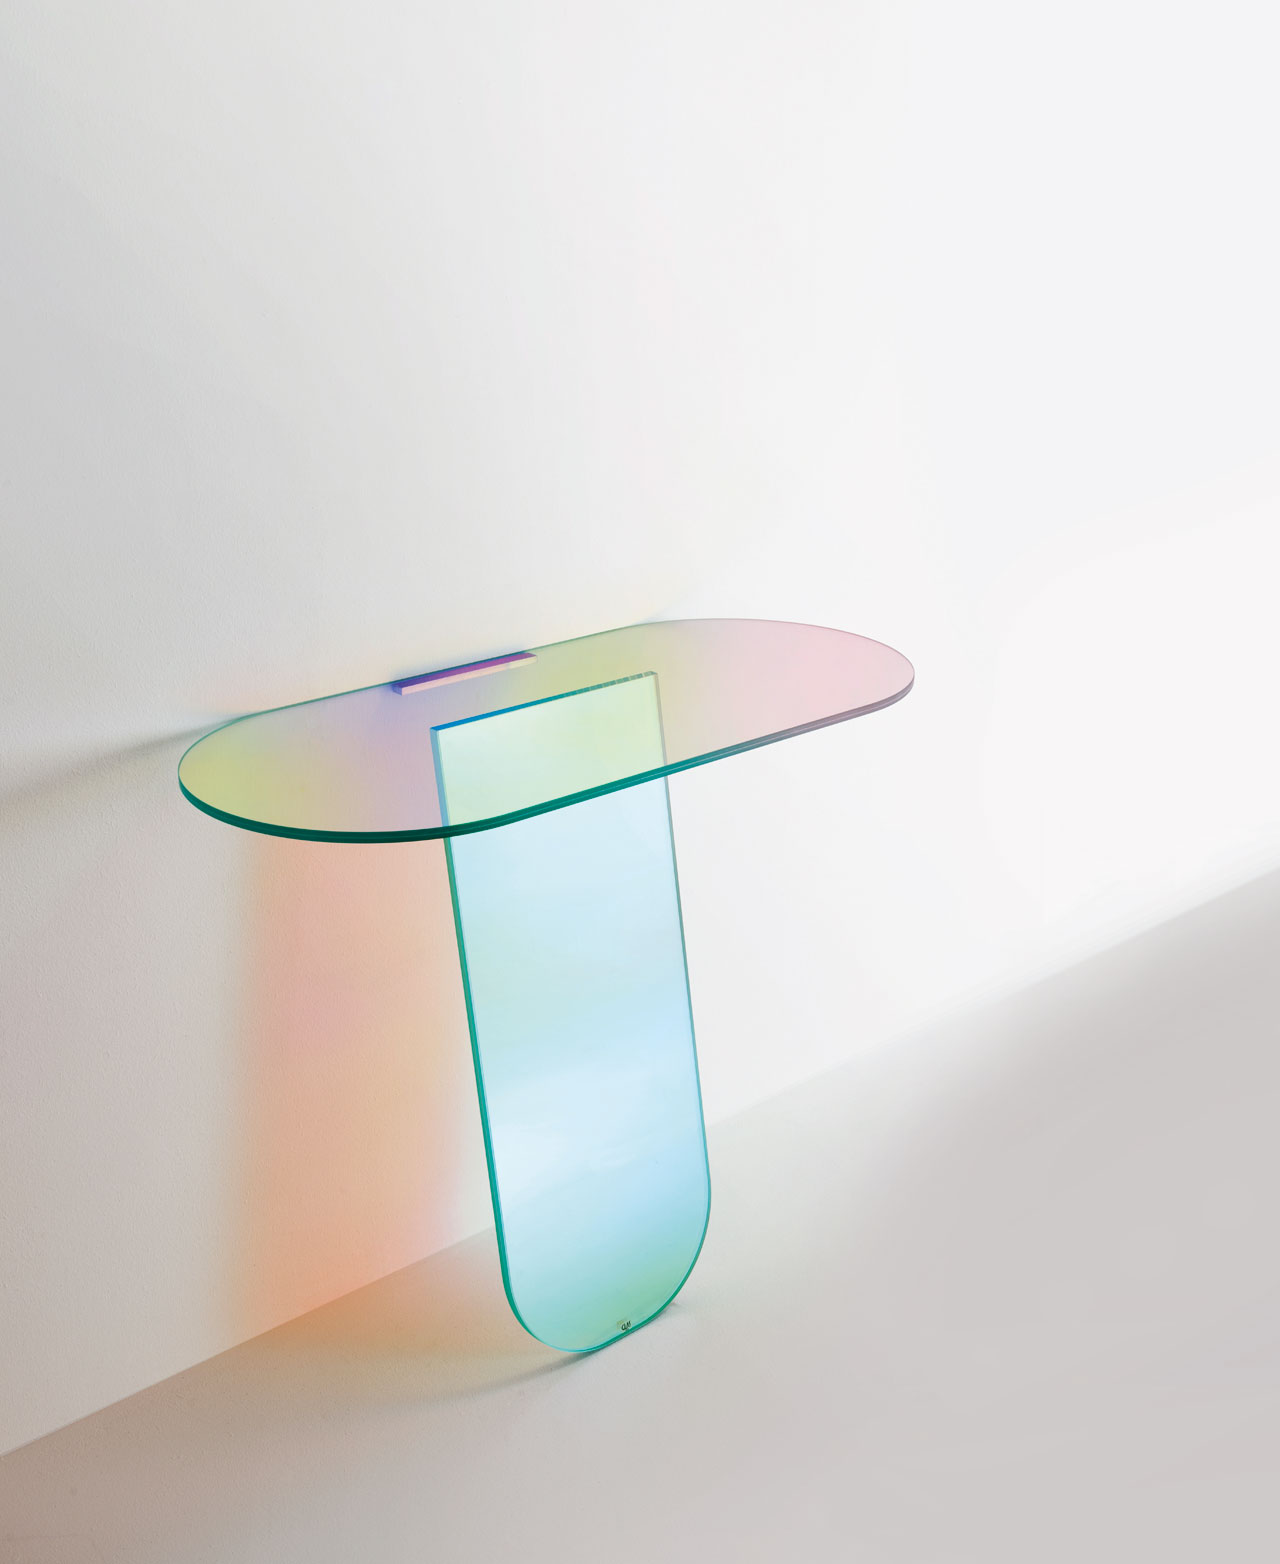 Console from theSHIMMER series byPatricia Urquiola for Glas Italia.